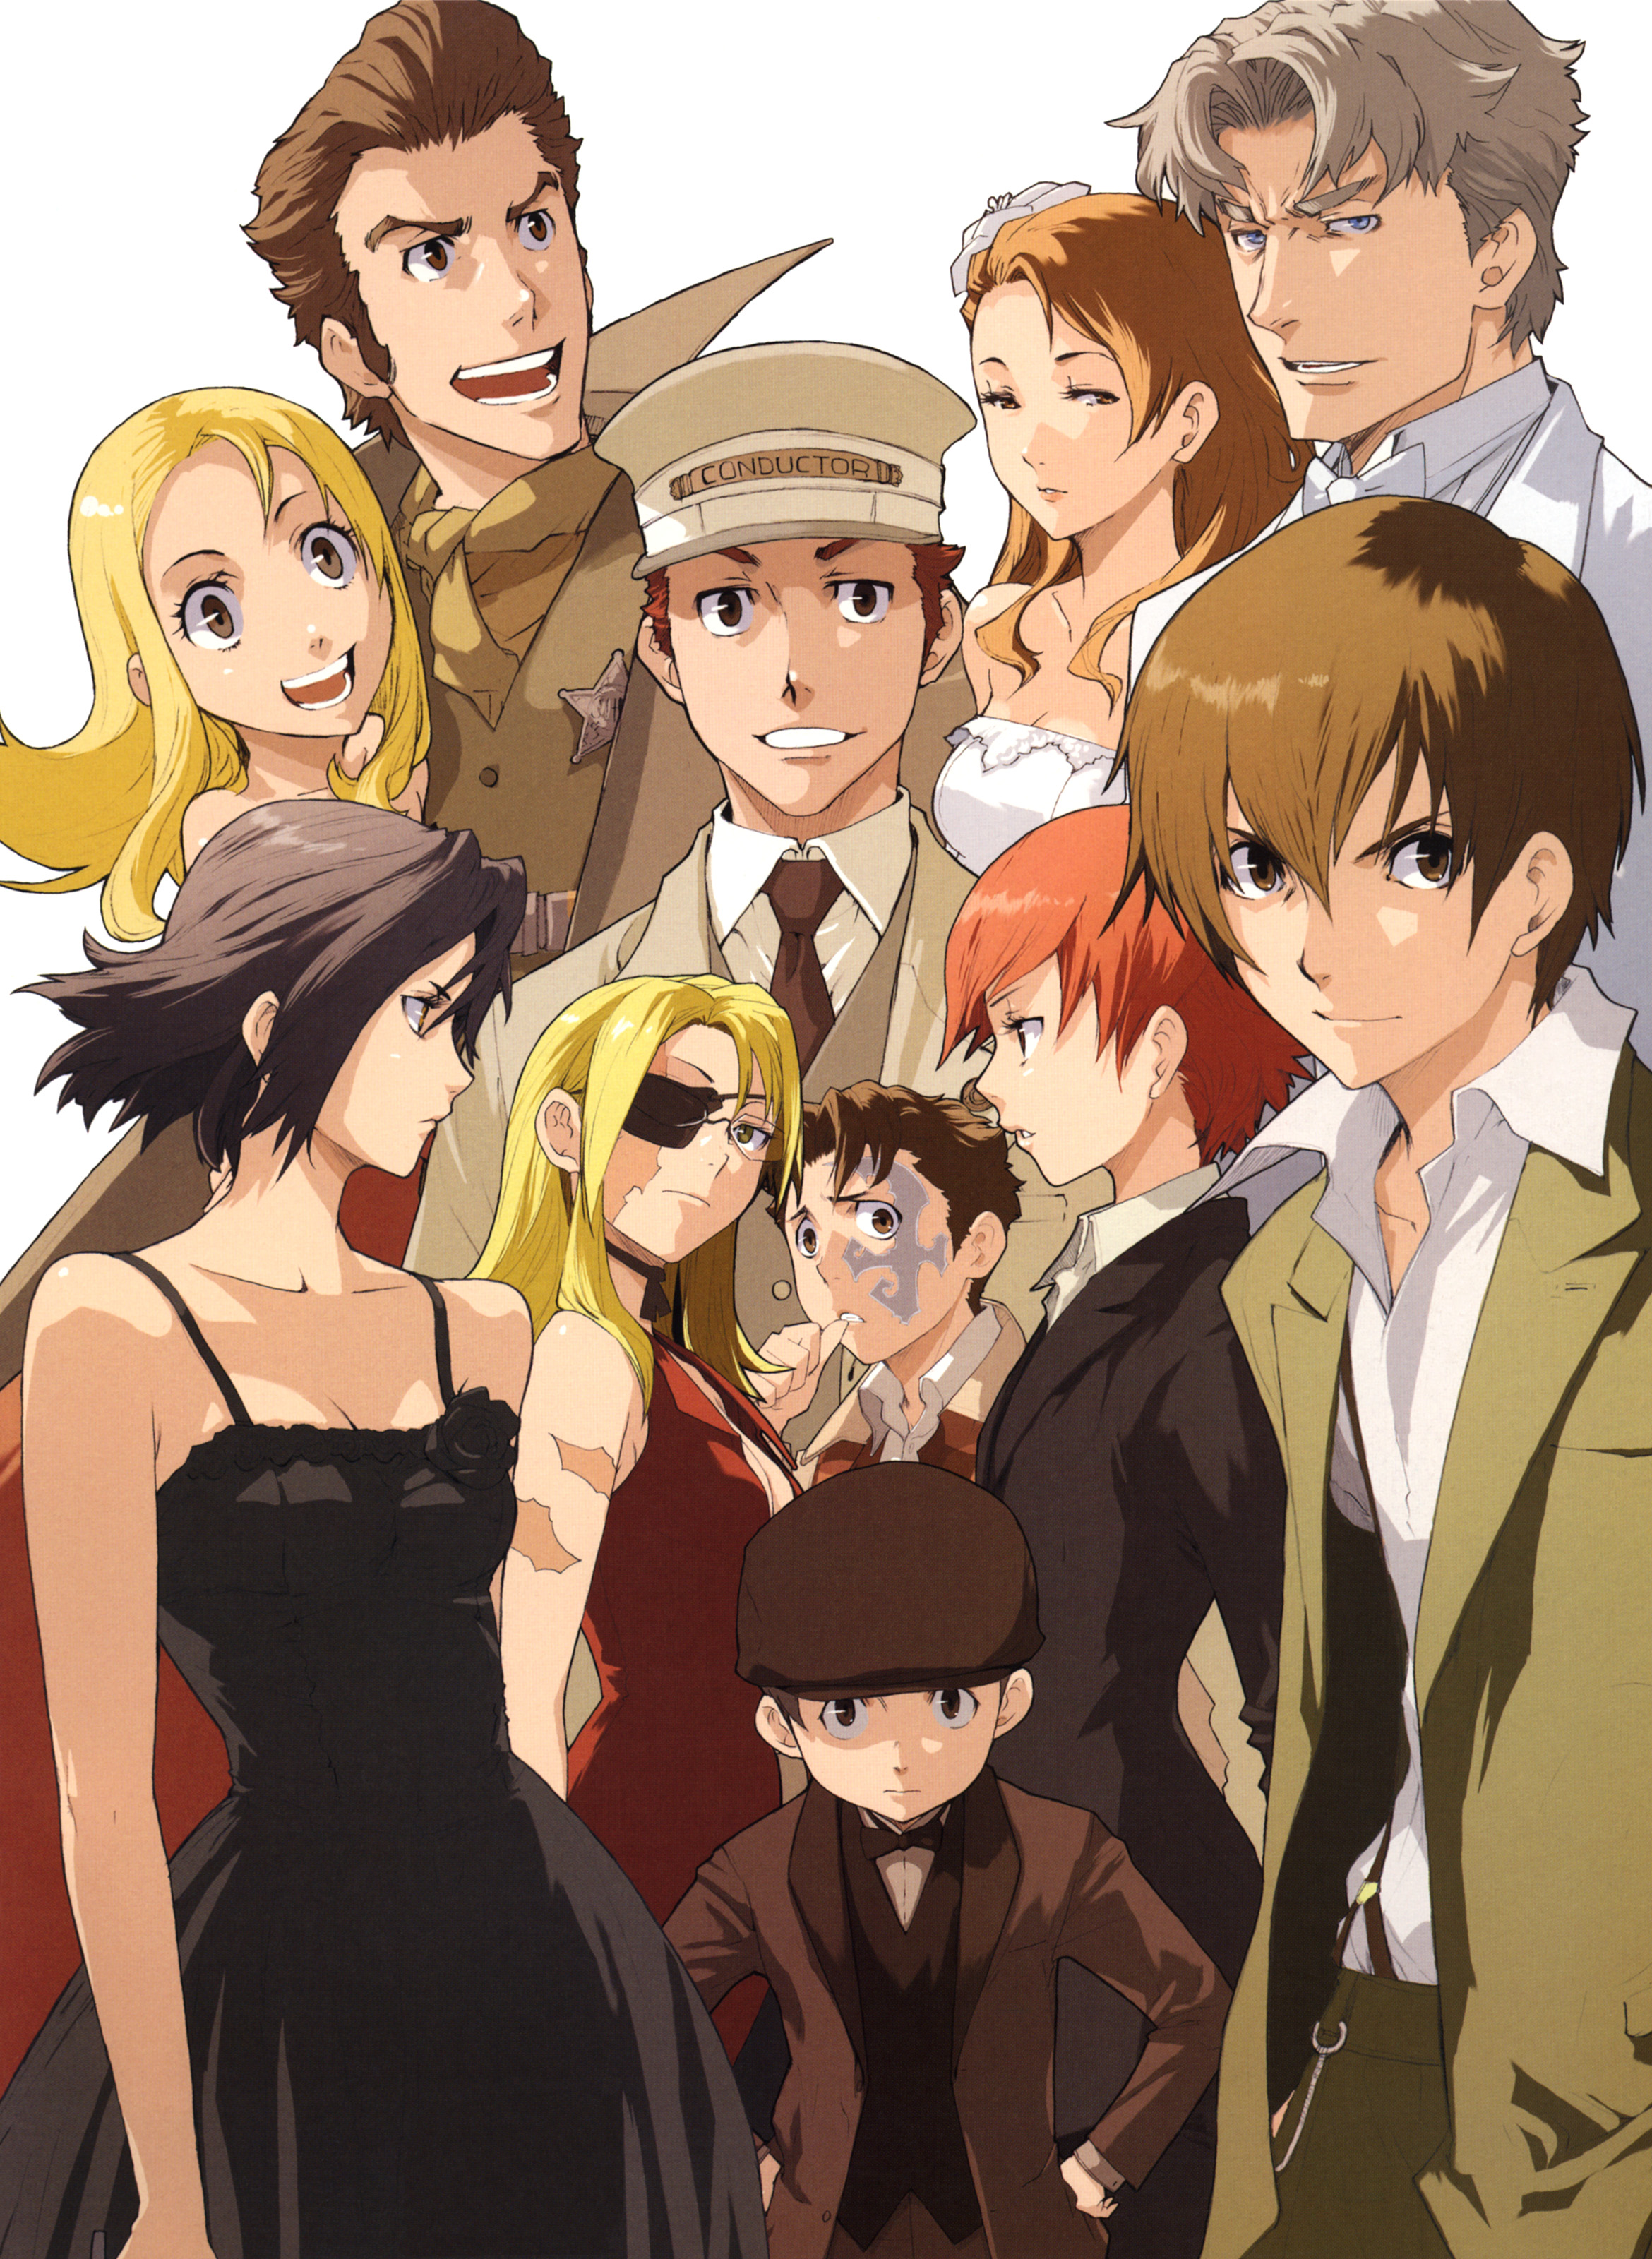 Baccano Official Pictures by Enami Katsumi - Baccano! Photo ...